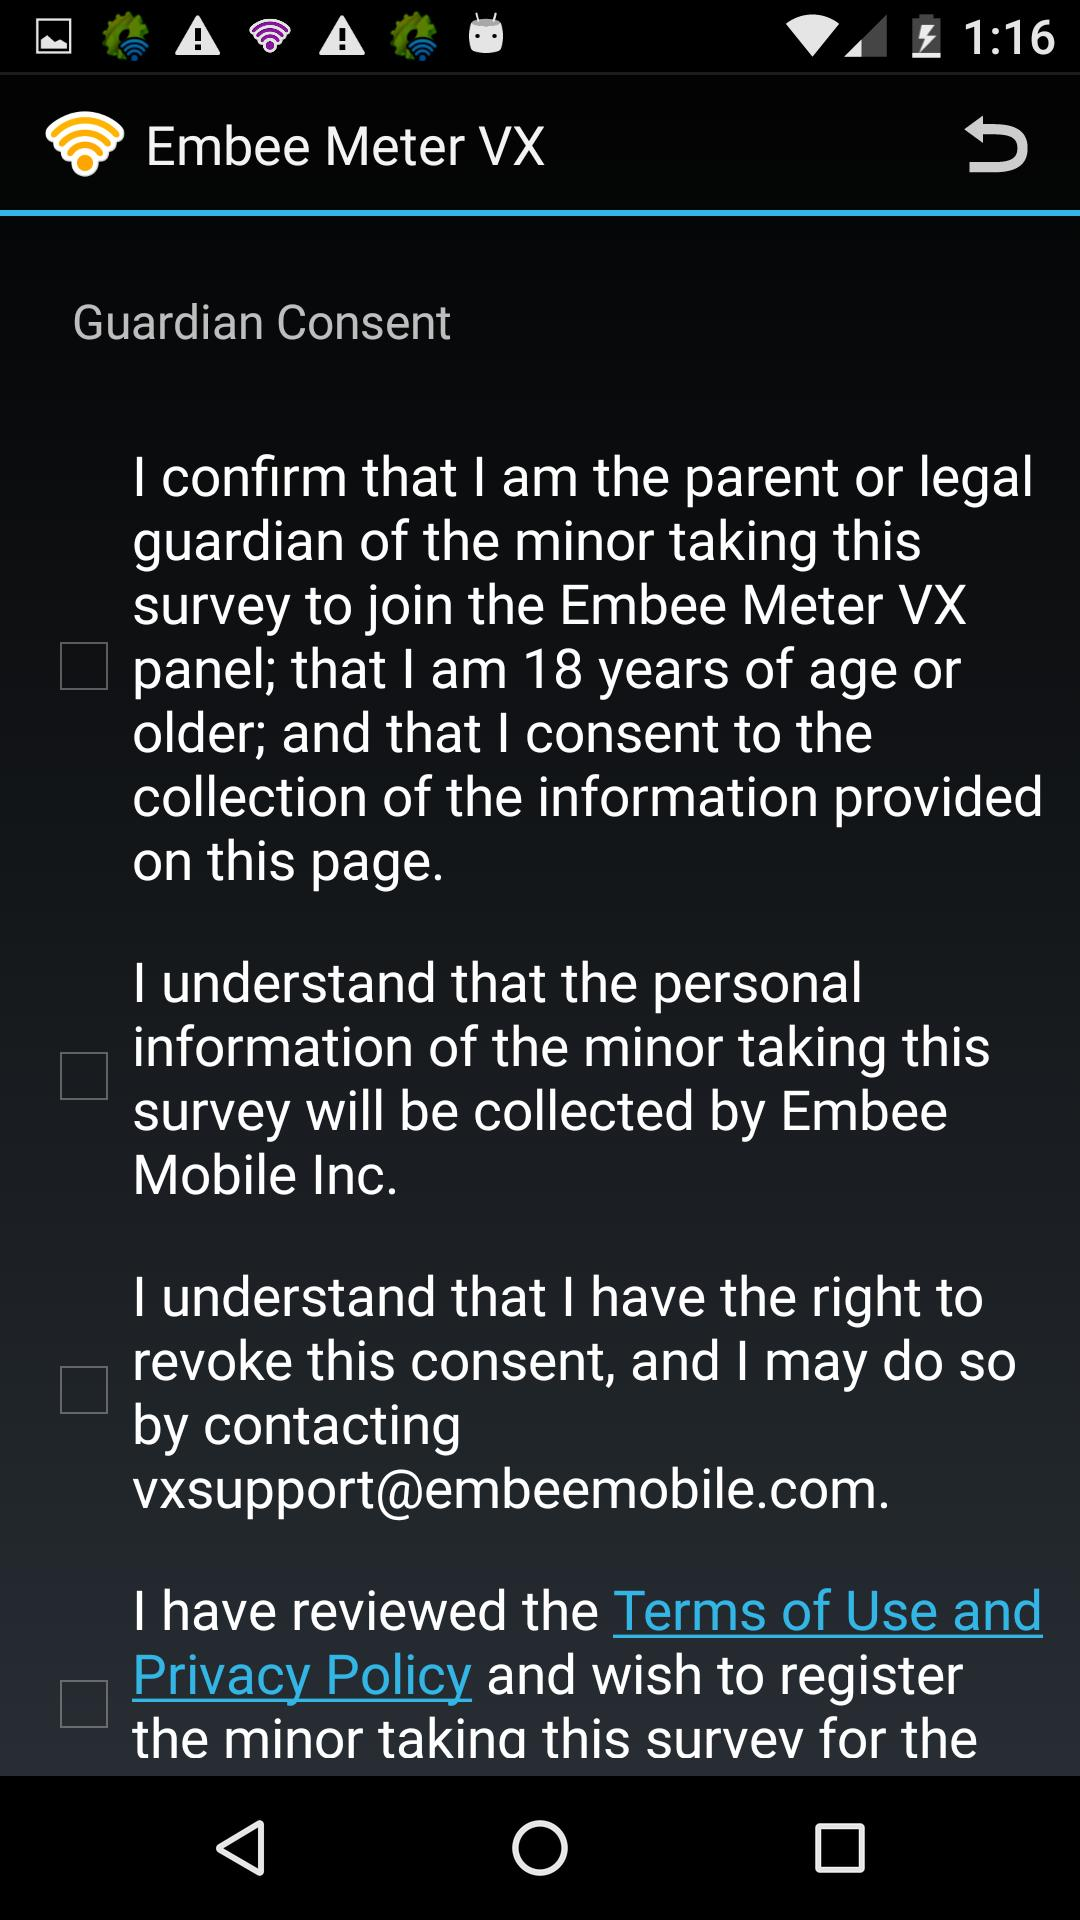 Embee Meter VX for Android - APK Download